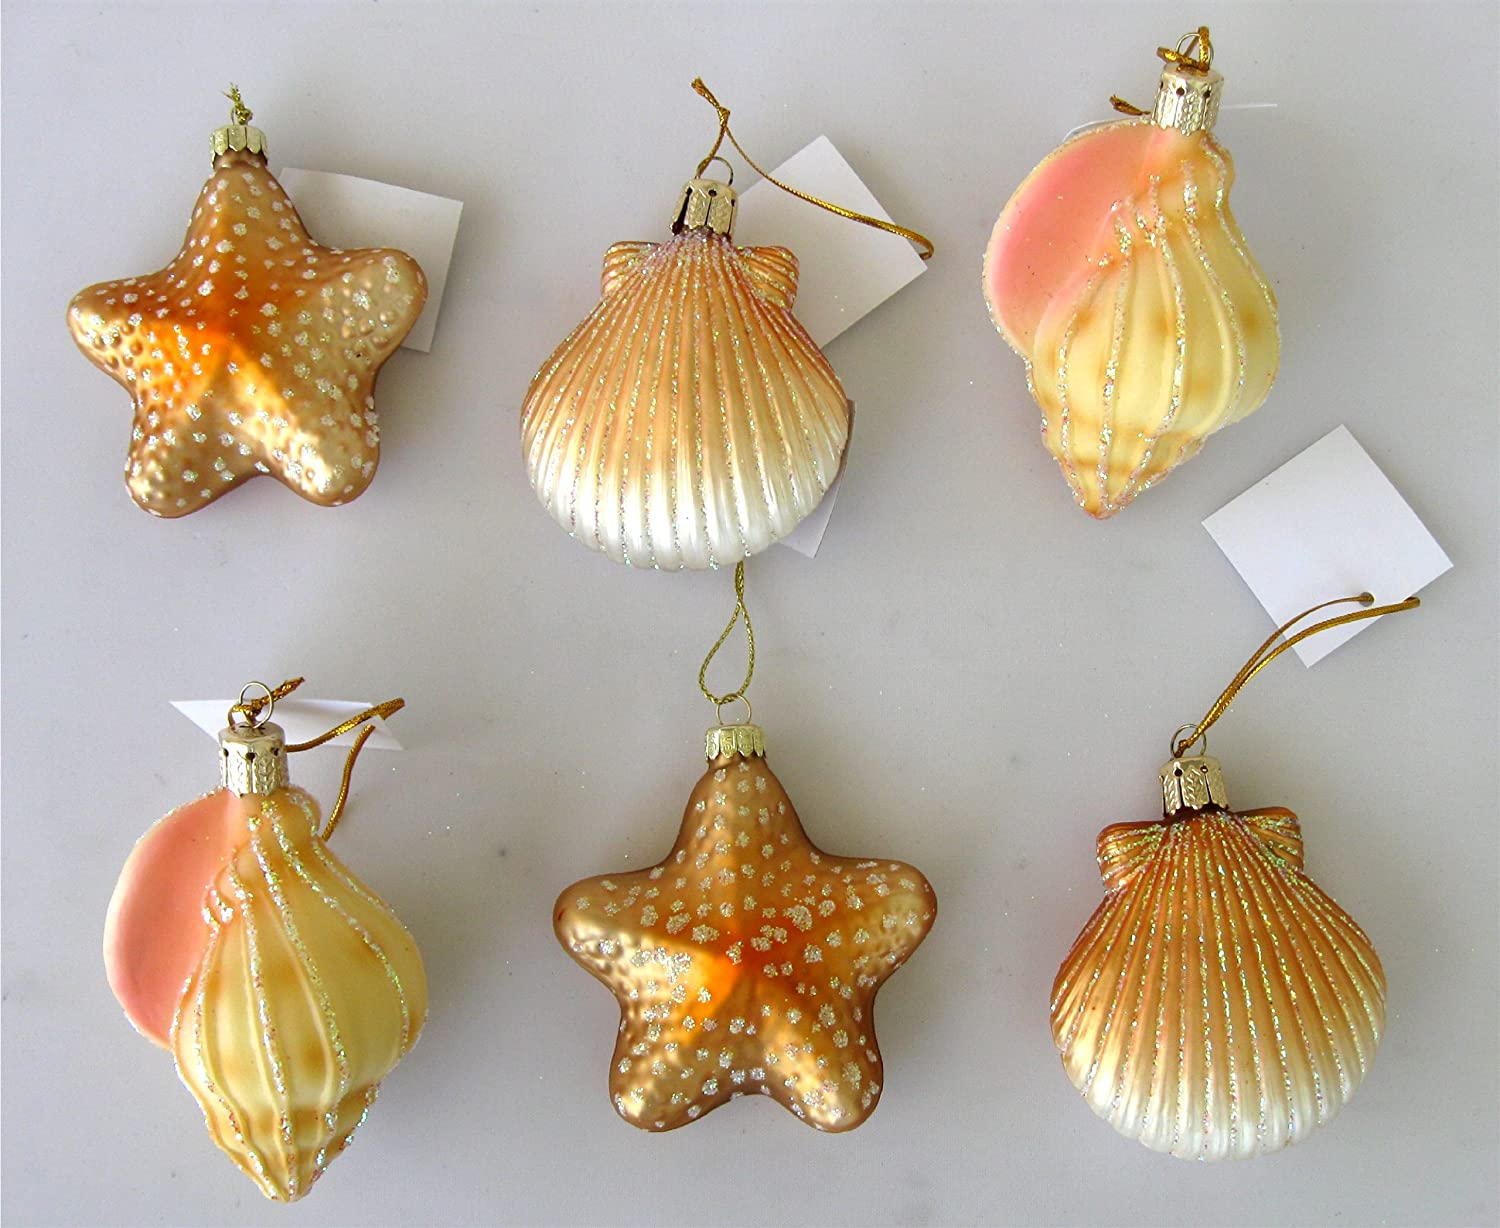 6 Blown Glass Seashell Ornaments